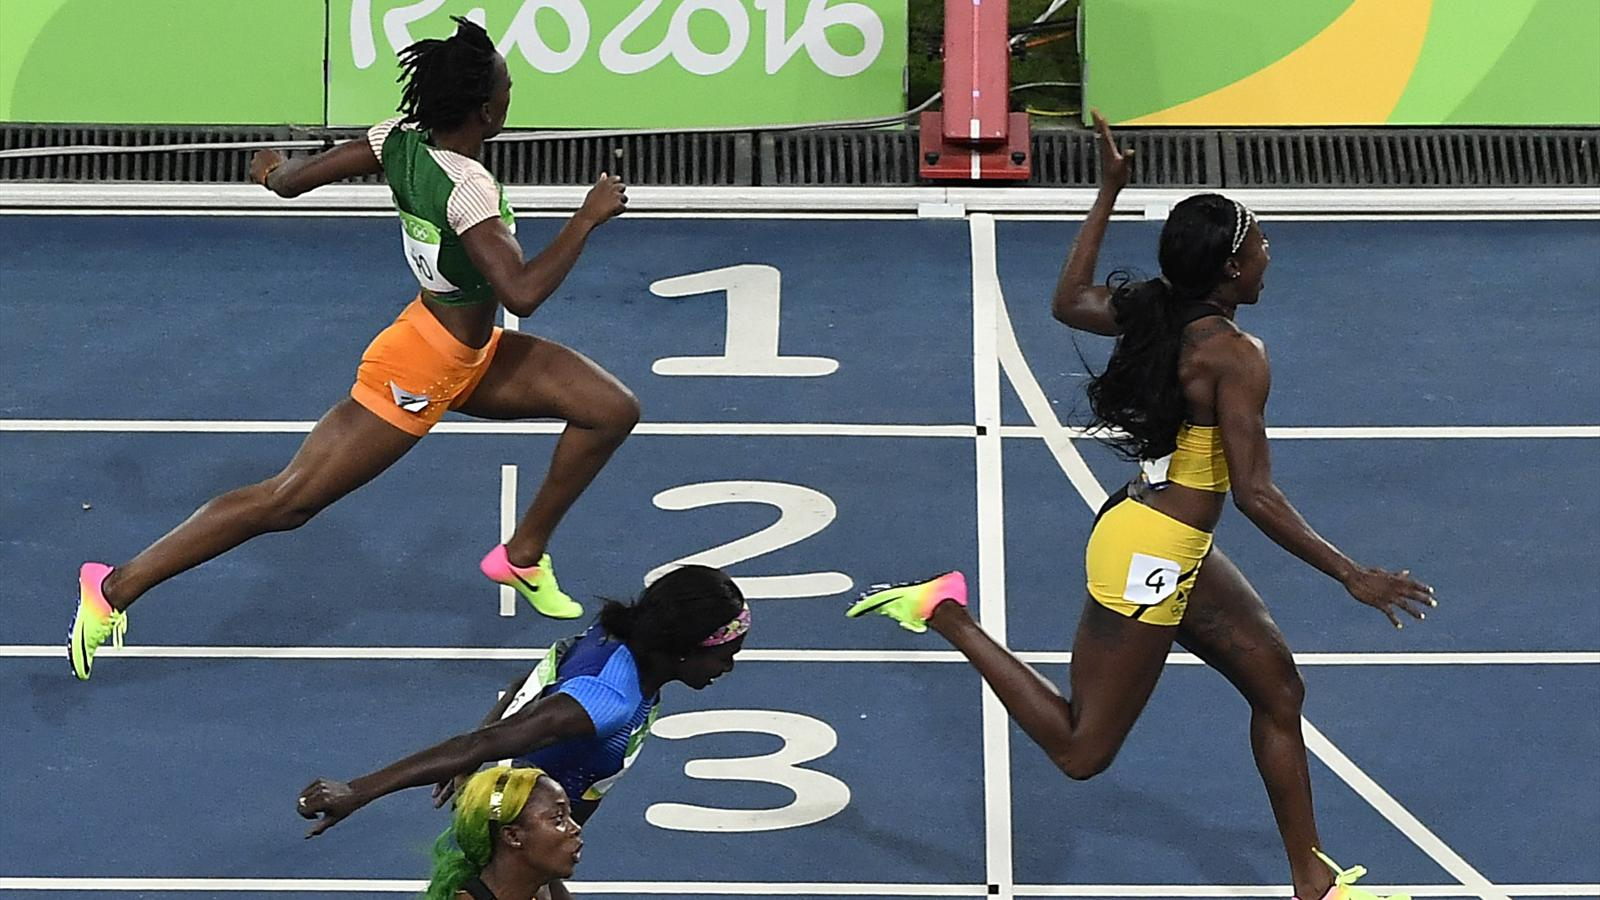 Olympia 2016 In Rio 100m Gold An Jamaikanerin Elaine Thompson In